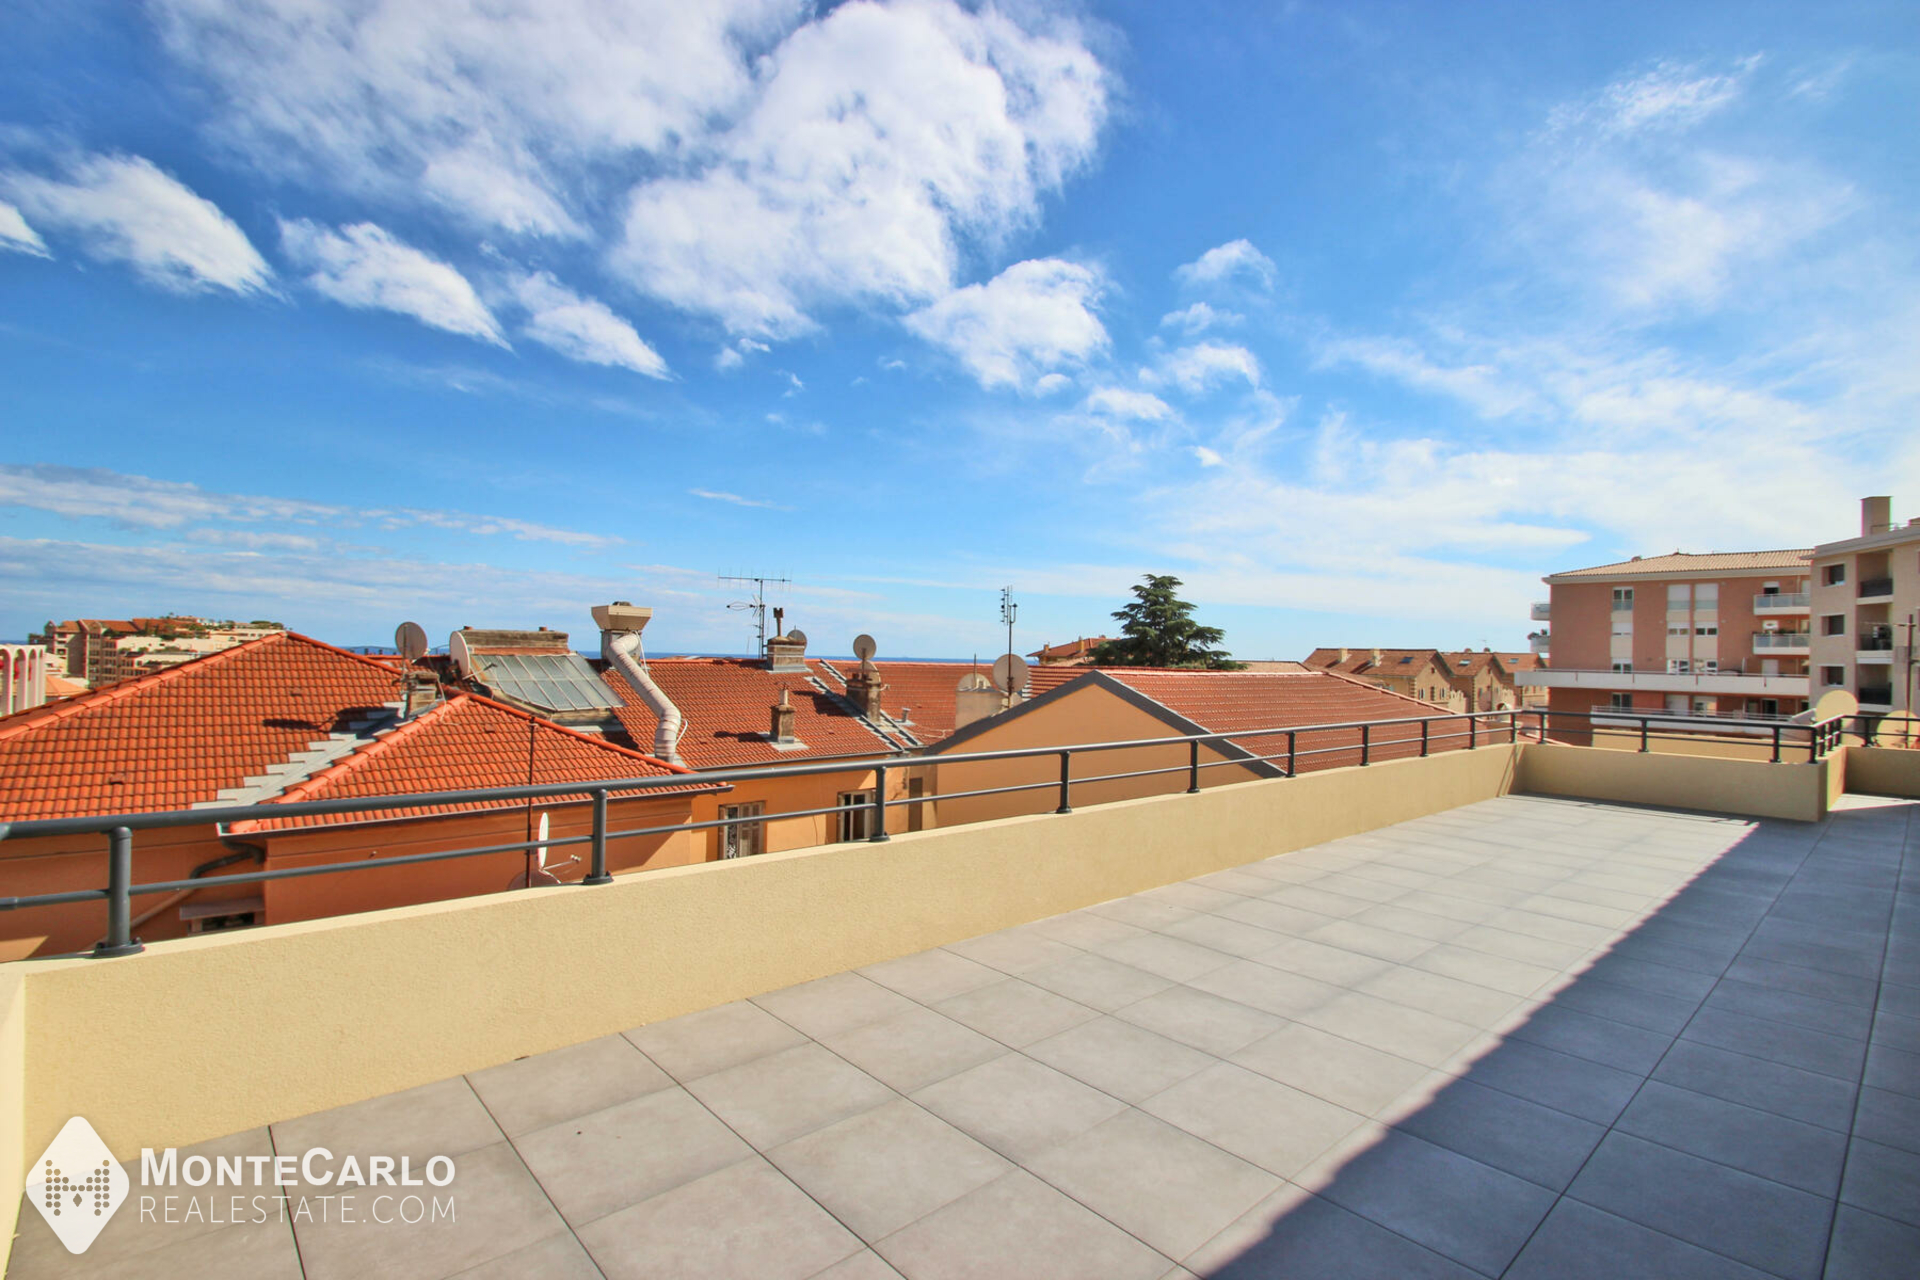 Verkauf Cap-d'Ail - Penthouse/Roof / +5 Zimmer : 1 800 000 € | Monte-Carlo Real Estate [VSE9-21]